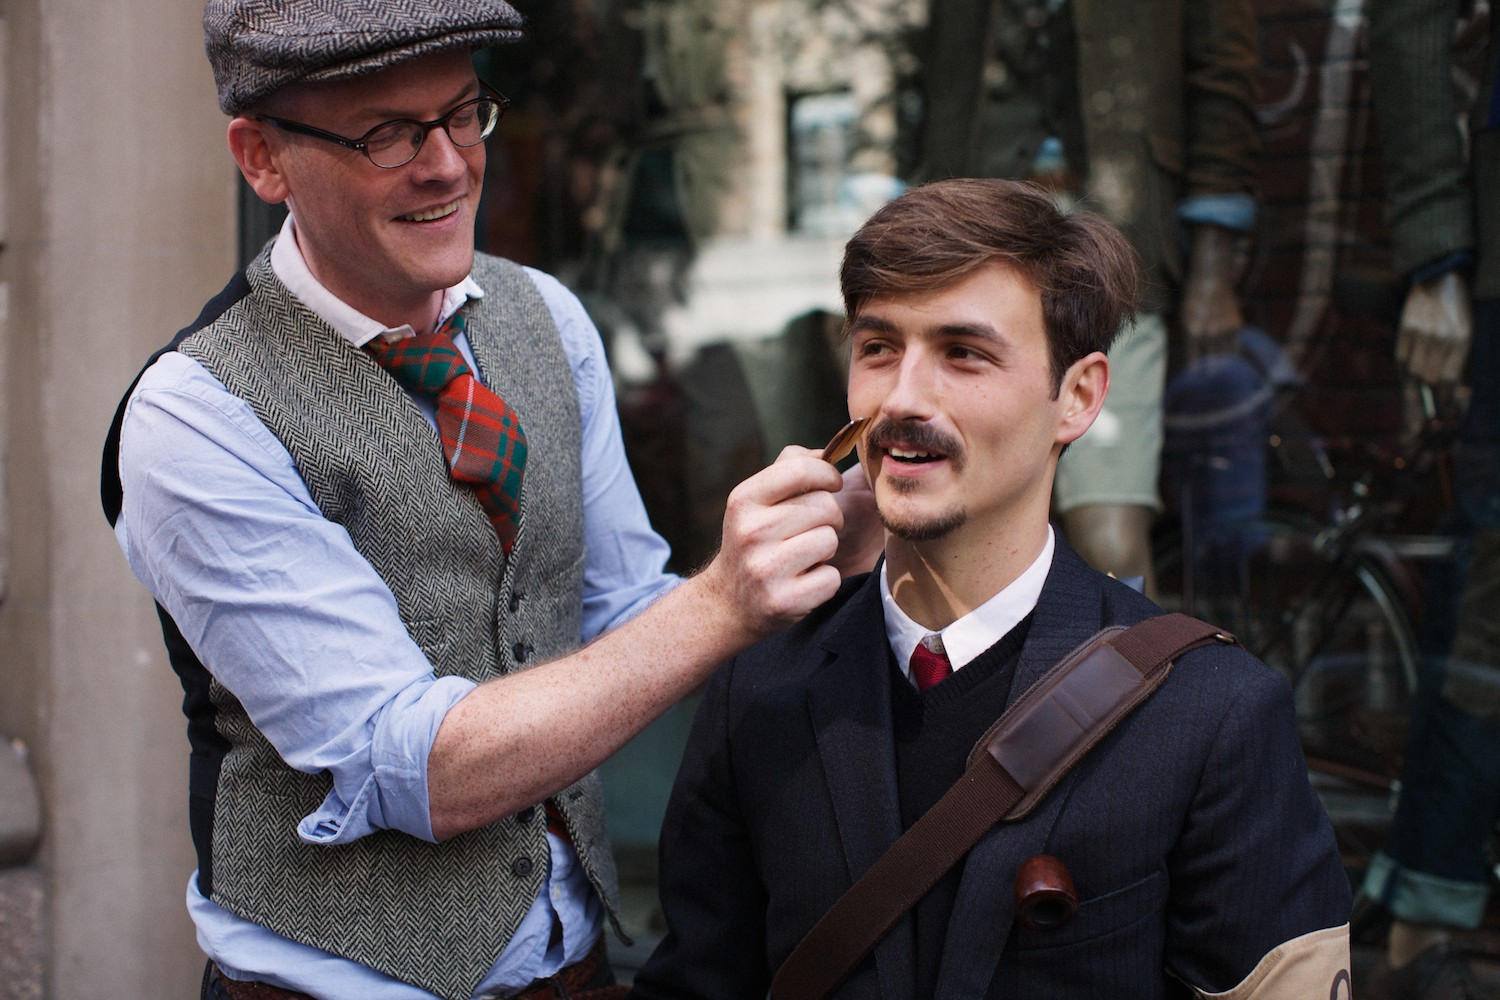 What—just one grown man combing another grown man's mustache.